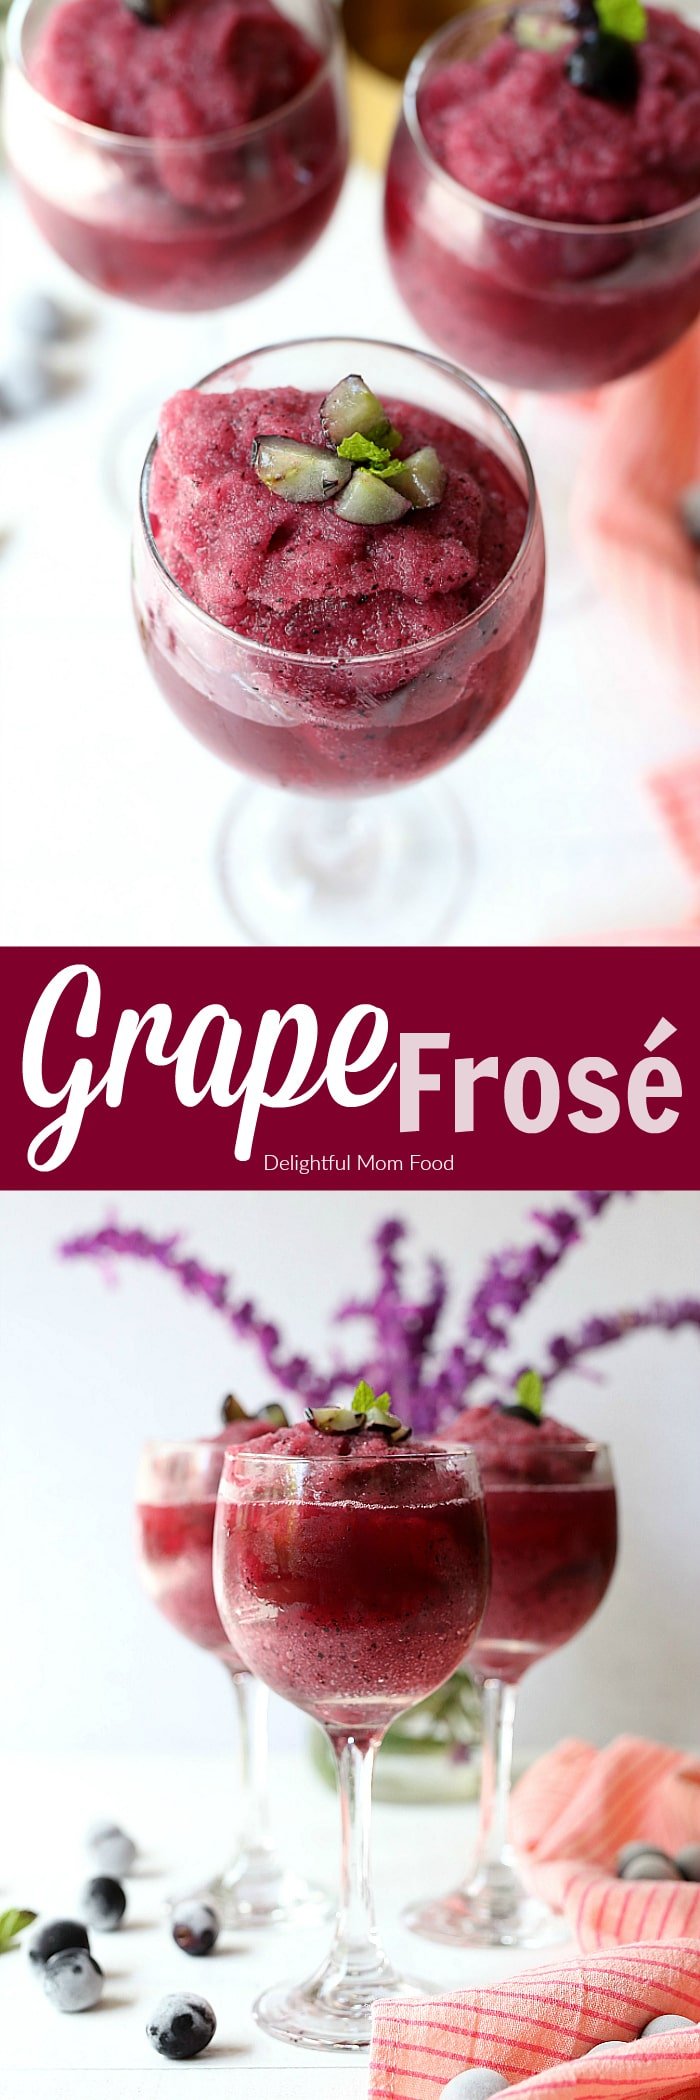 Grape Frosé Rosé (Frozen Rosé)- a refreshing blend of frozen grapes withrosé wine! Enjoy this trendy summer alcoholic beverage at your next party or BBQ to serve a large crowd! Summer's all-time hit cocktails are Frozen Rosé along with enjoying a chilled glass of Rosé wine all day (Rosé All Day Babeee!)! This fruity alcoholic beverage has grown in popularity for its refreshing slushy texture of frozen fruit blended with rosé wine. #frozen #FroséRosé #frozenrosé #grapes #fruit #cocktails #skinnydrinks #easy #quick #roséallday | Recipe at delightfulmomfood.com